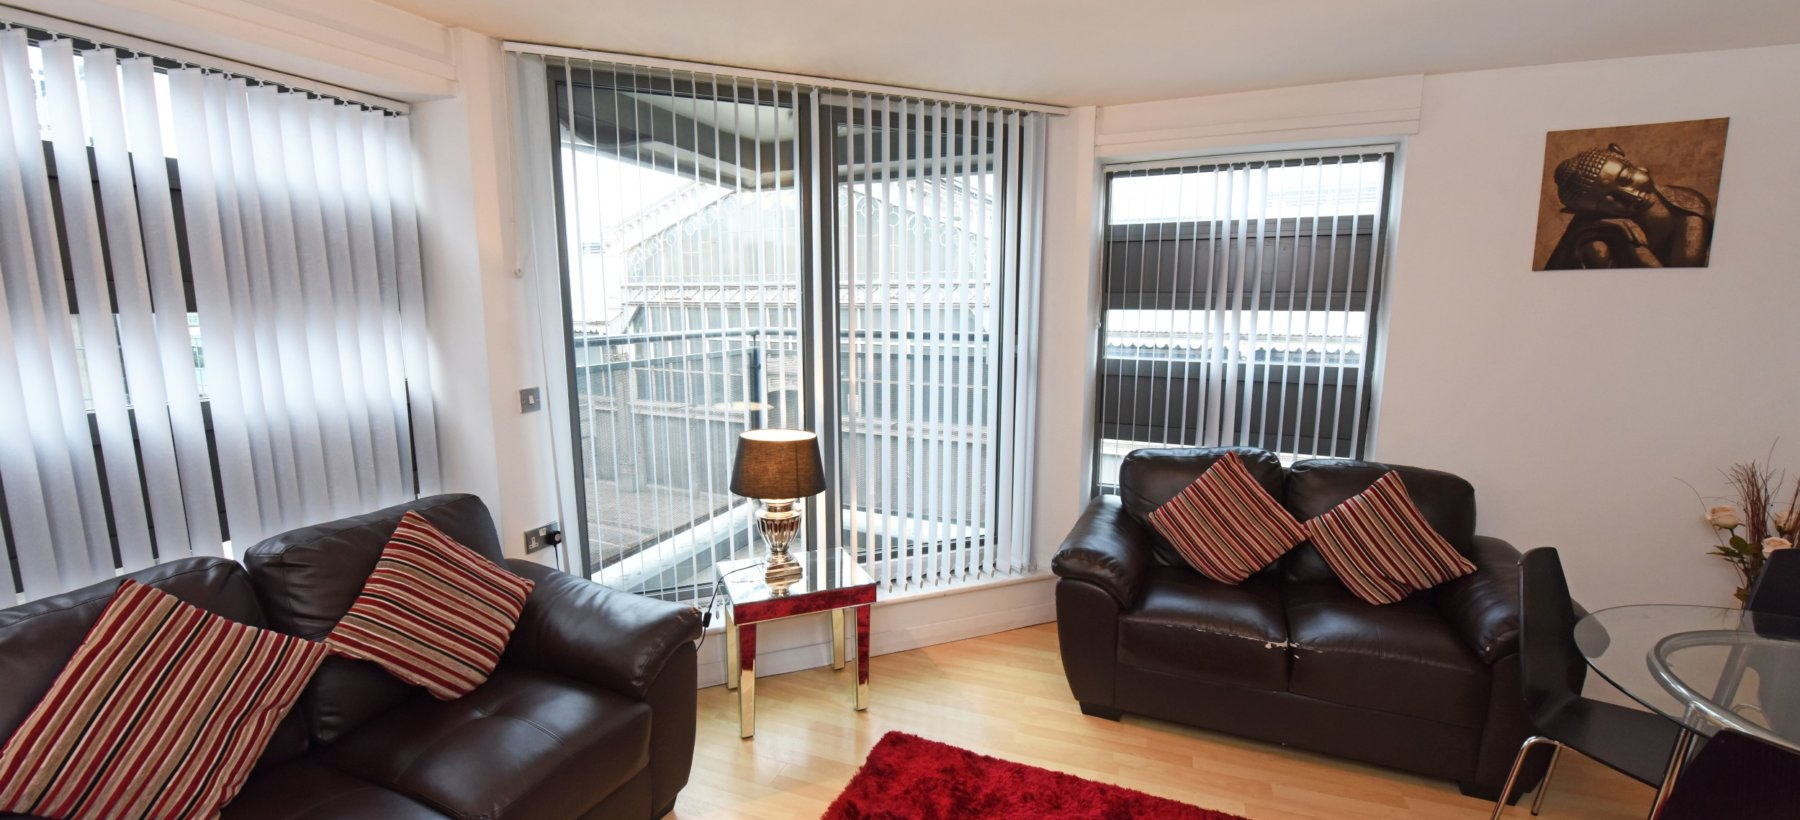 Plush bedroom at Deansgate Apartments, Deansgate, Manchester - Citybase Apartments